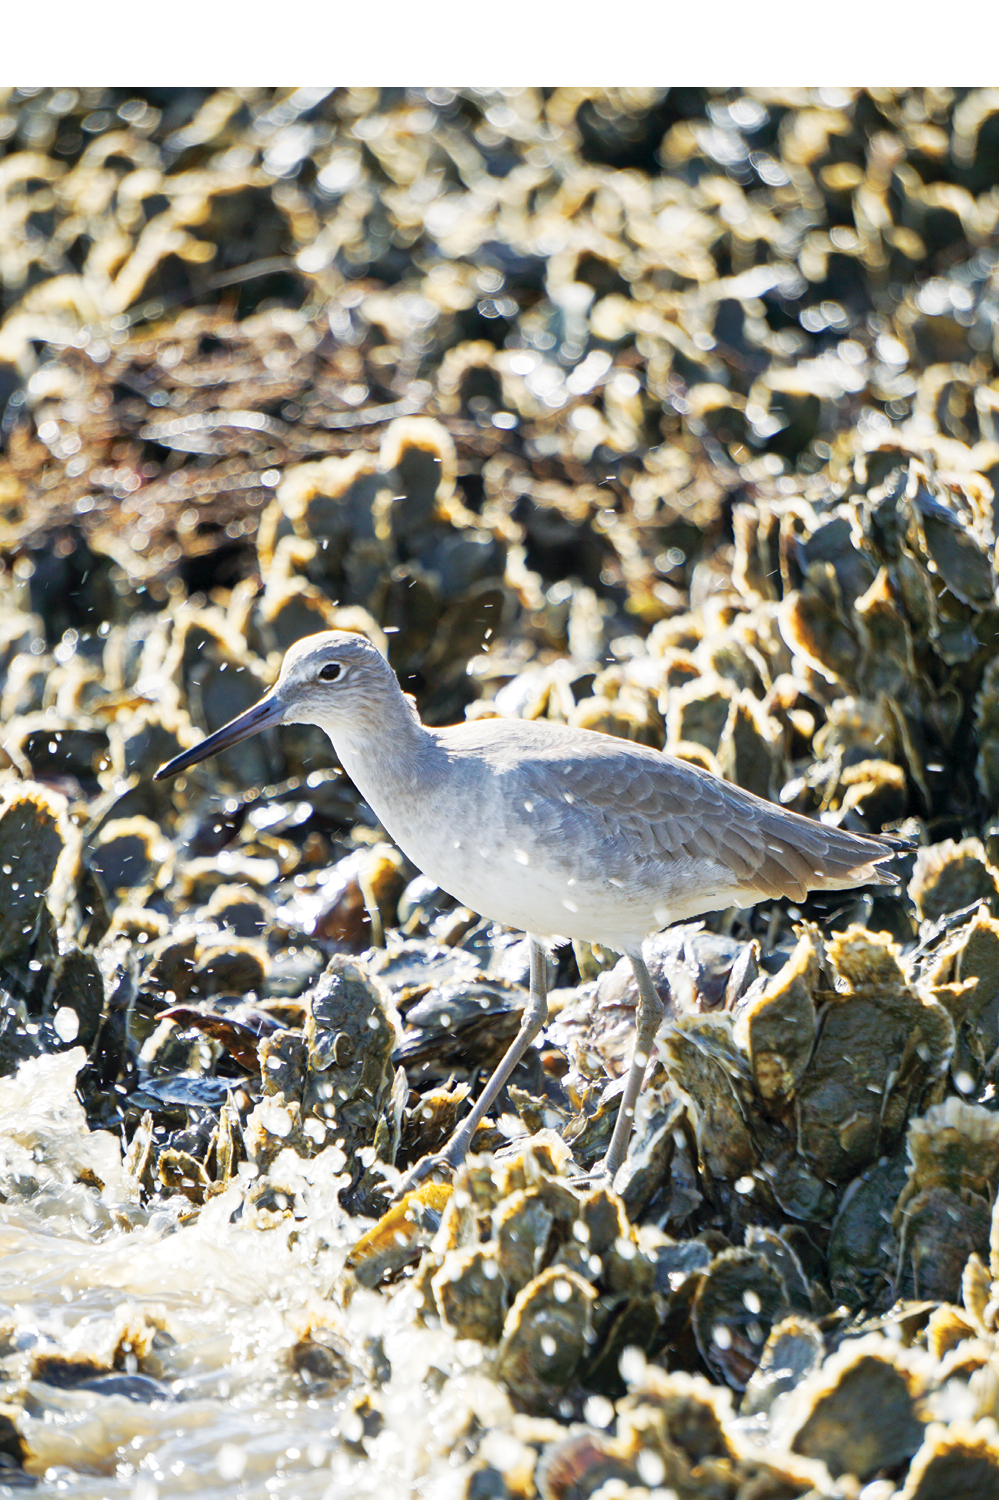 A scavenging willet stays close by, hoping for scraps.<br />